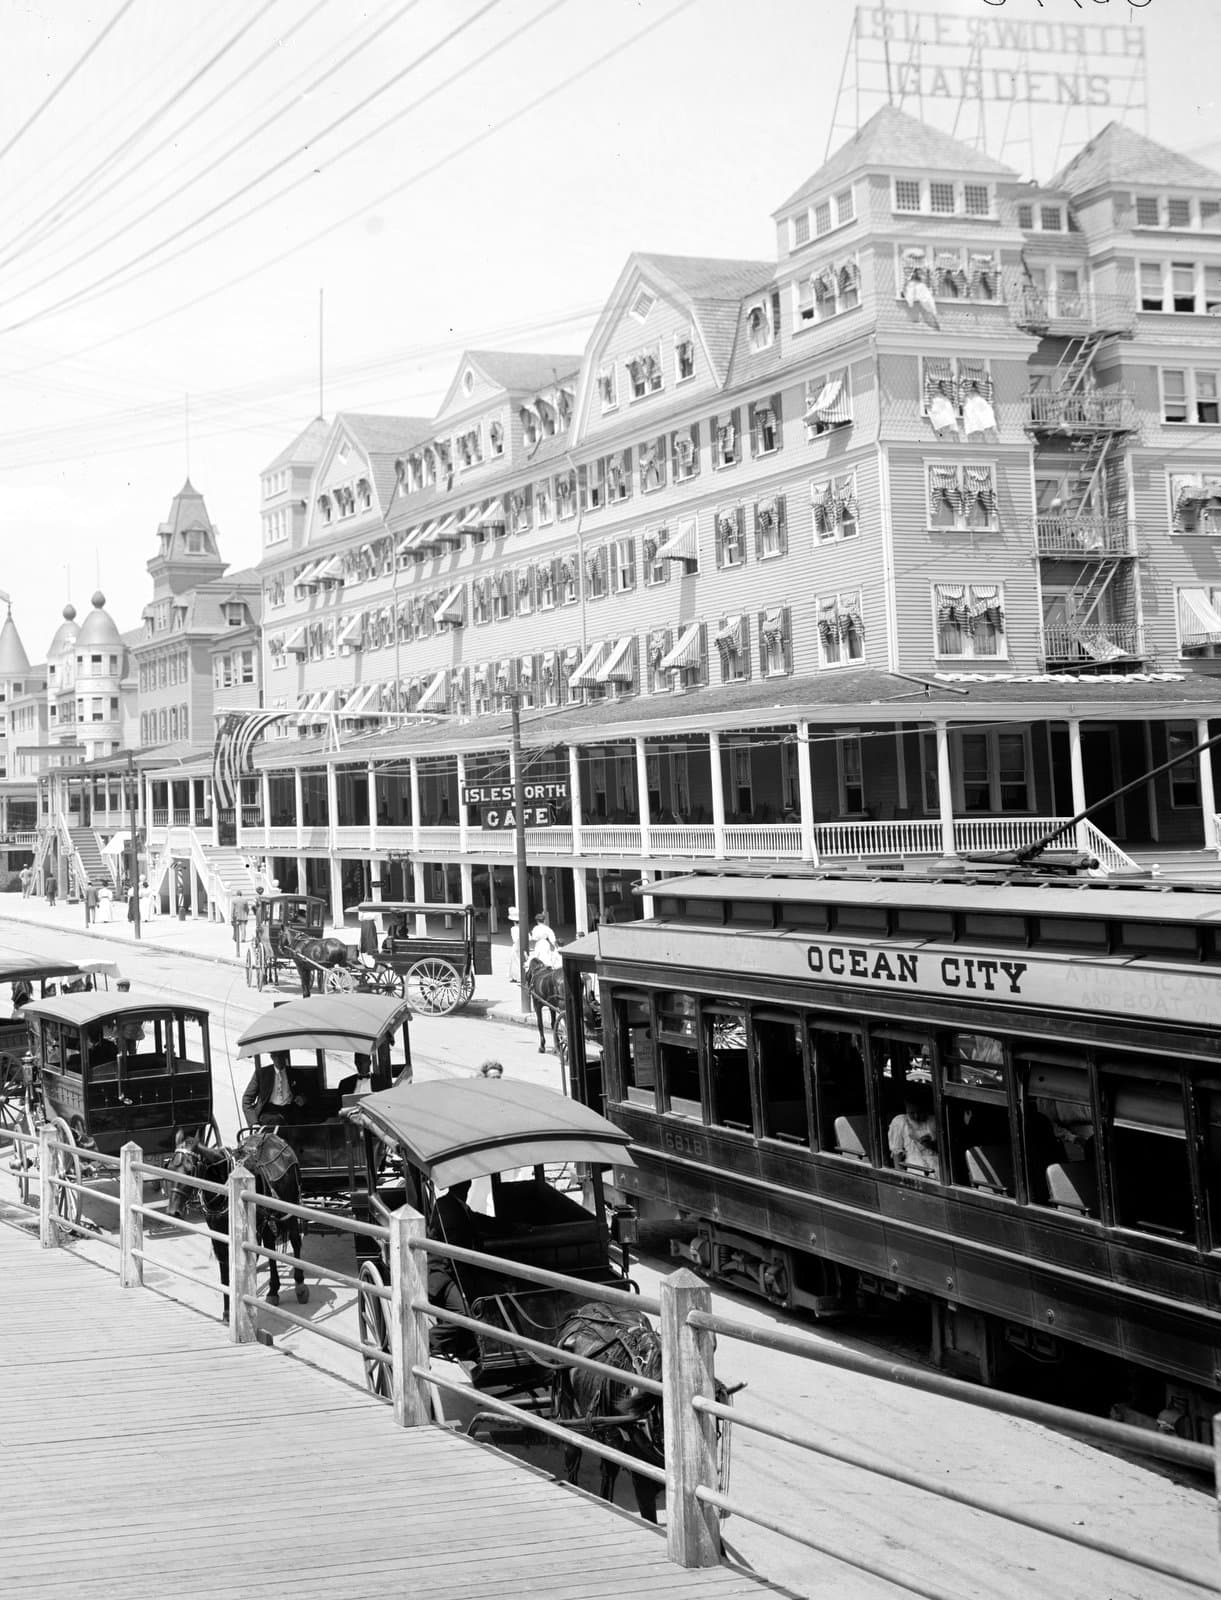 Ocean City trolley and buildings on the old Jersey Shore (1900s)